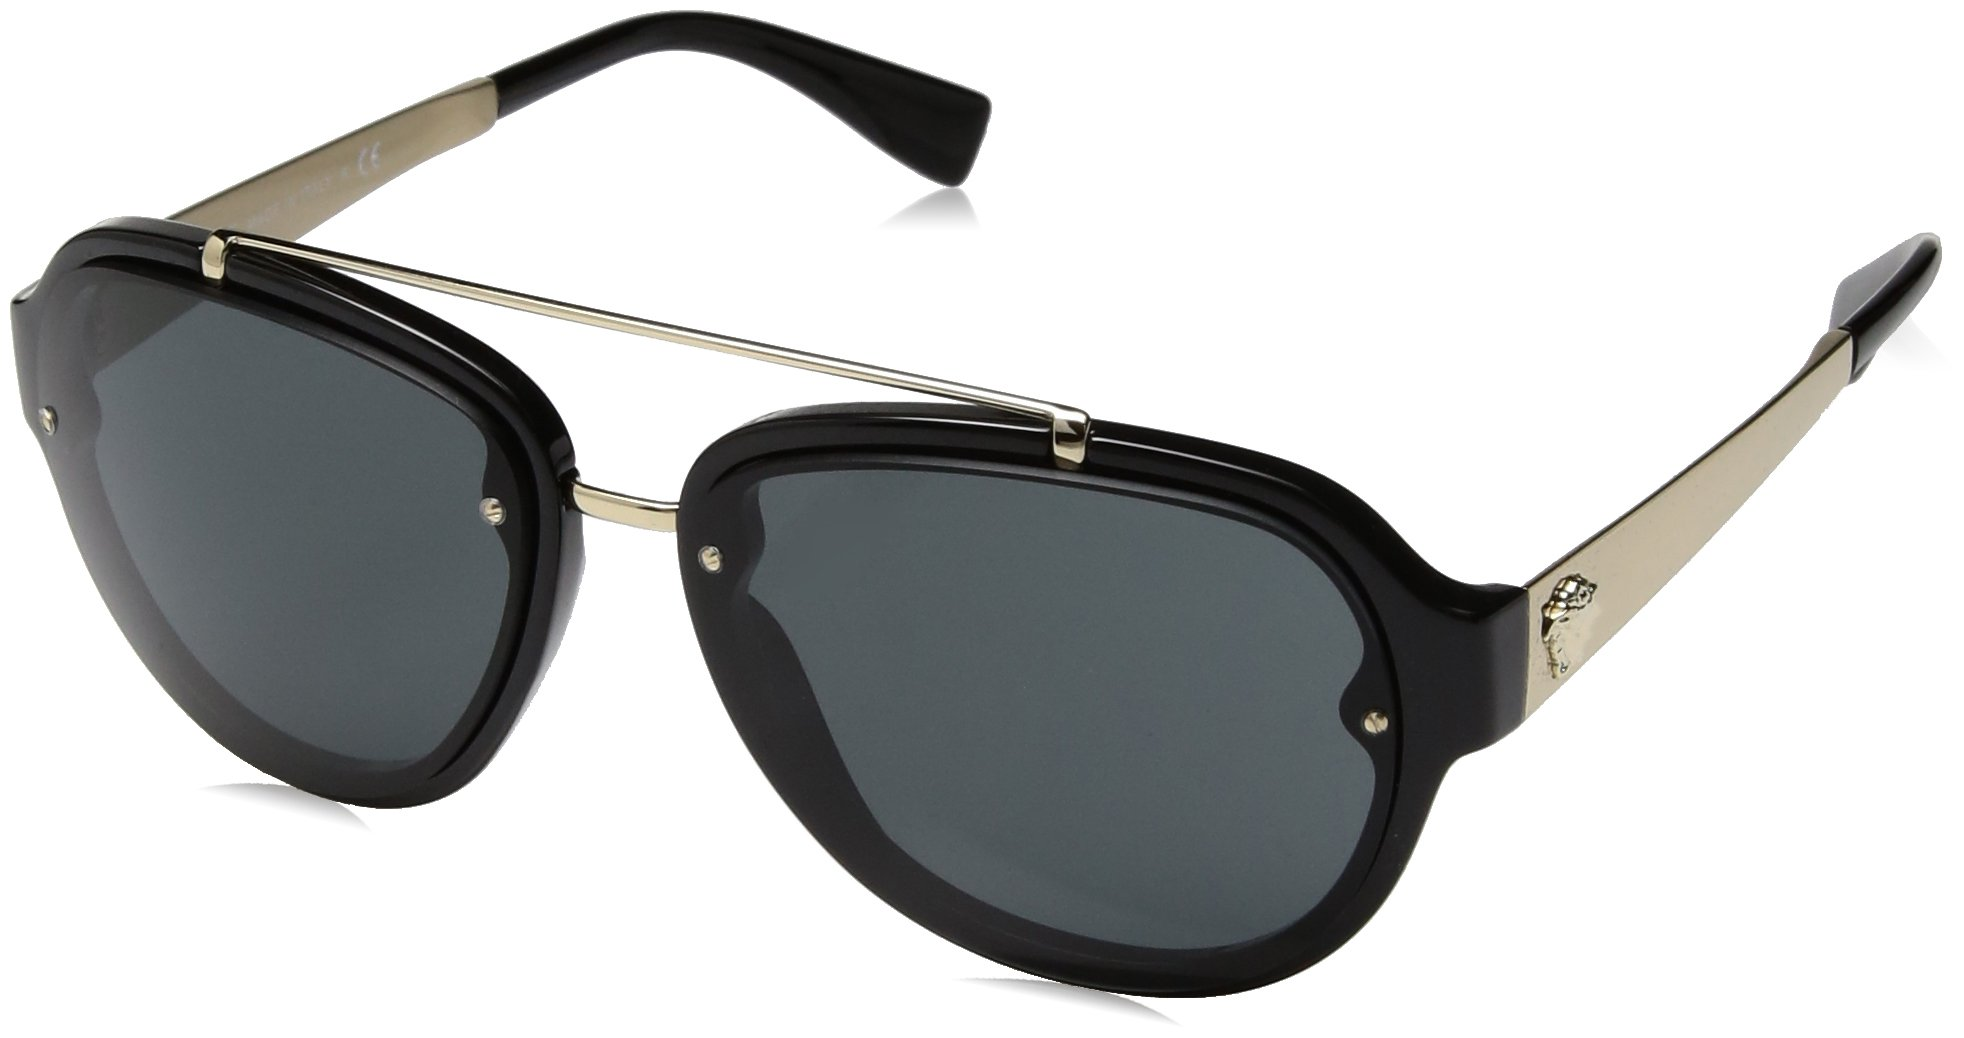 Versace VE4327 GB1/87 Black VE4327 Aviator Sunglasses Lens Category 3 Size 57mm by Versace